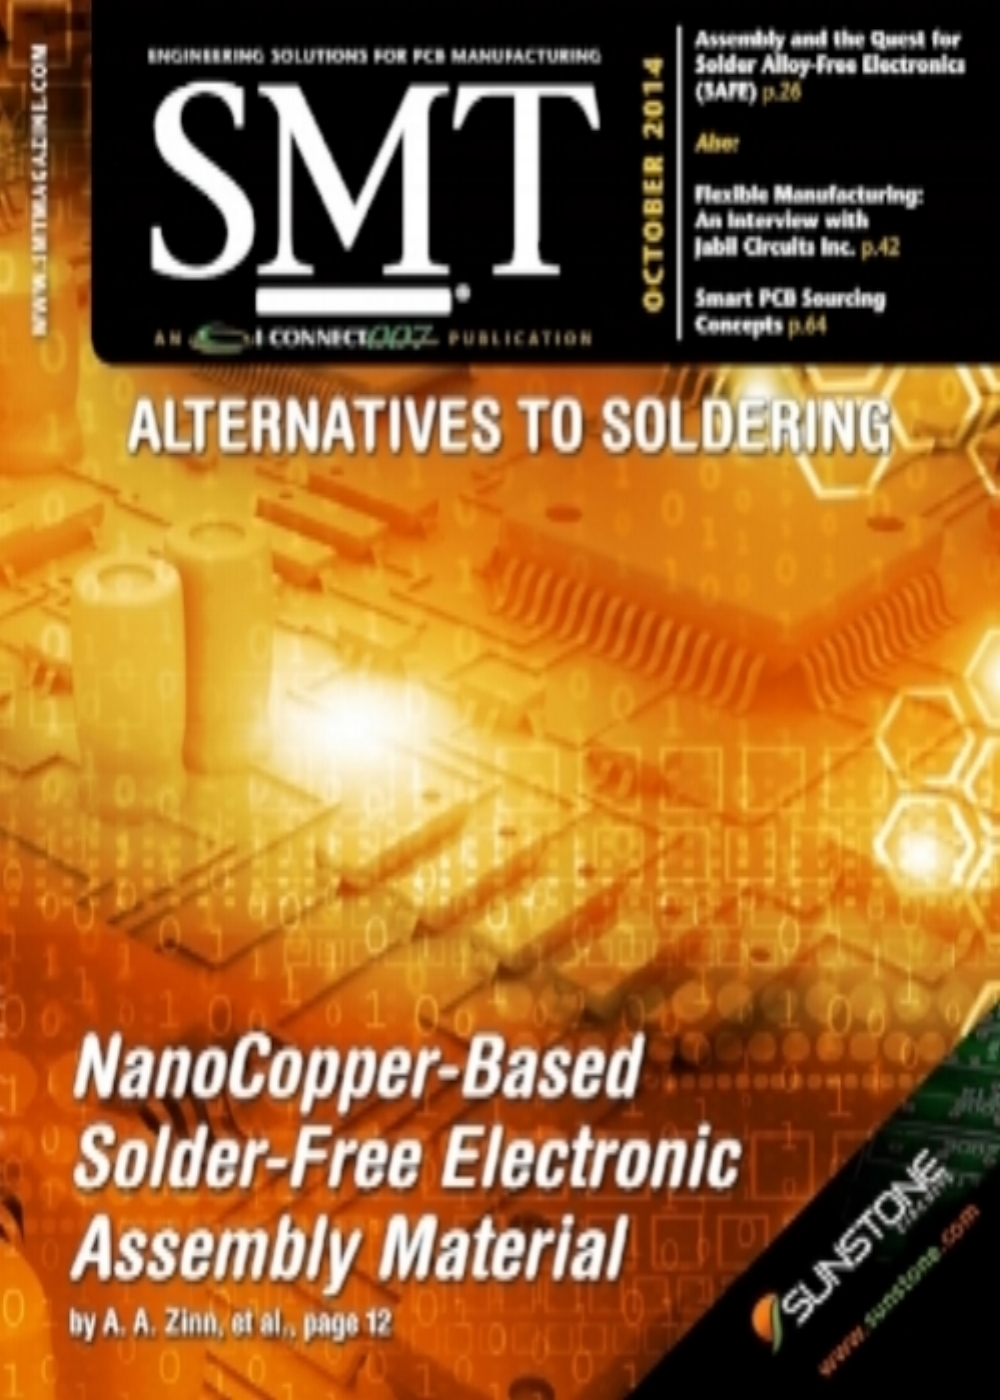 NanoCopper-based Solder Free Assembly